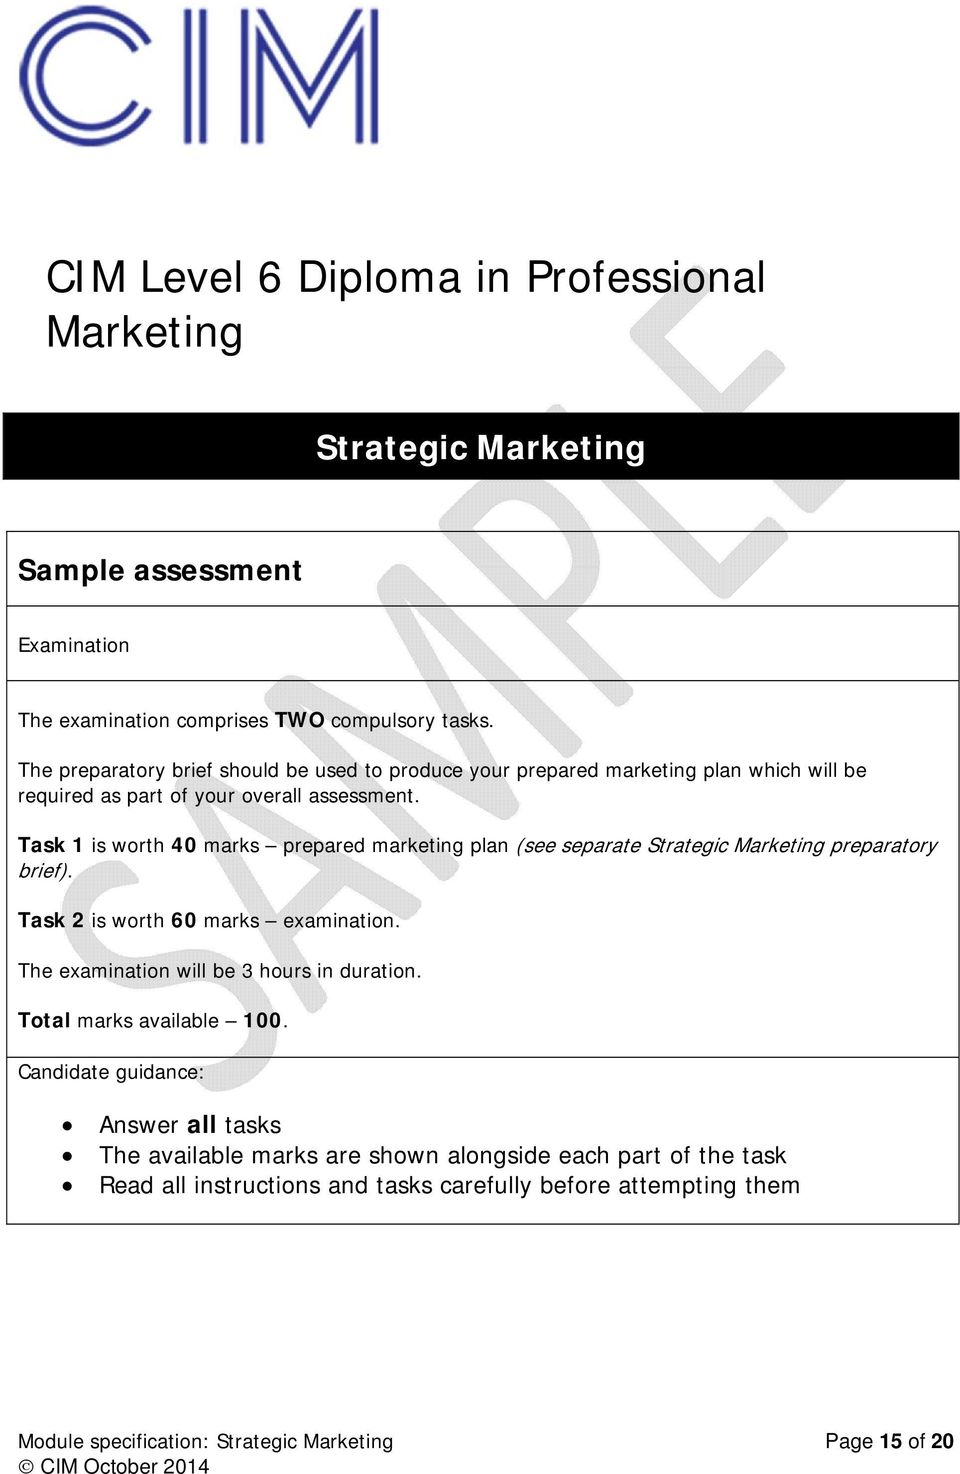 Task 1 is worth 40 marks prepared marketing plan (see separate Strategic Marketing preparatory brief). Task 2 is worth 60 marks examination.